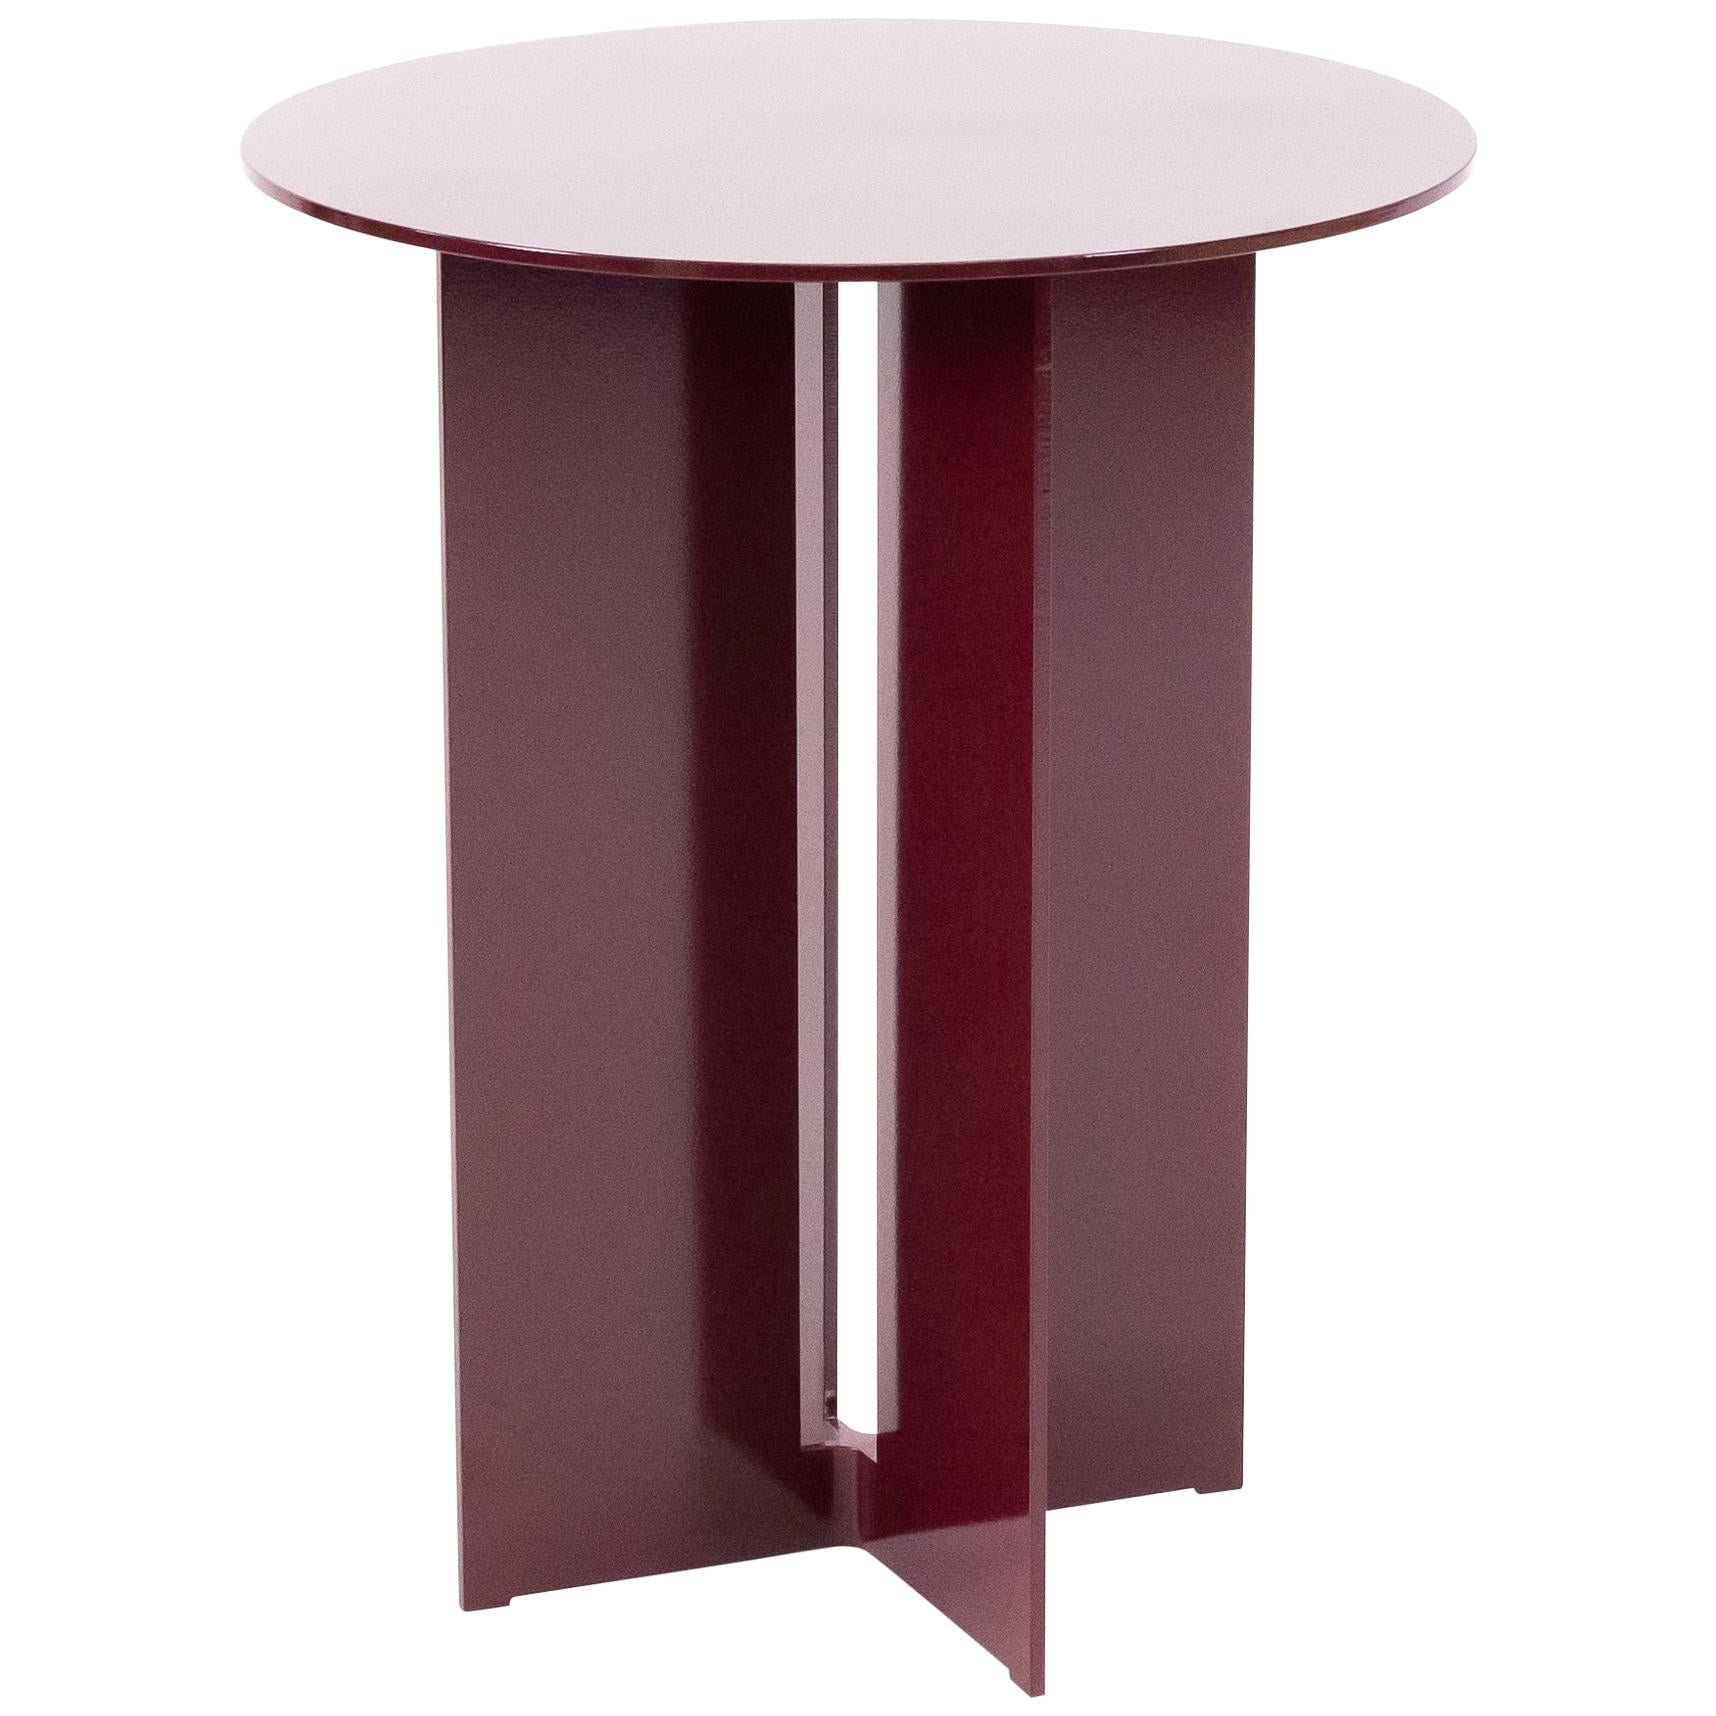 Mers Side Table in Powdercoat Aluminum Burgundy